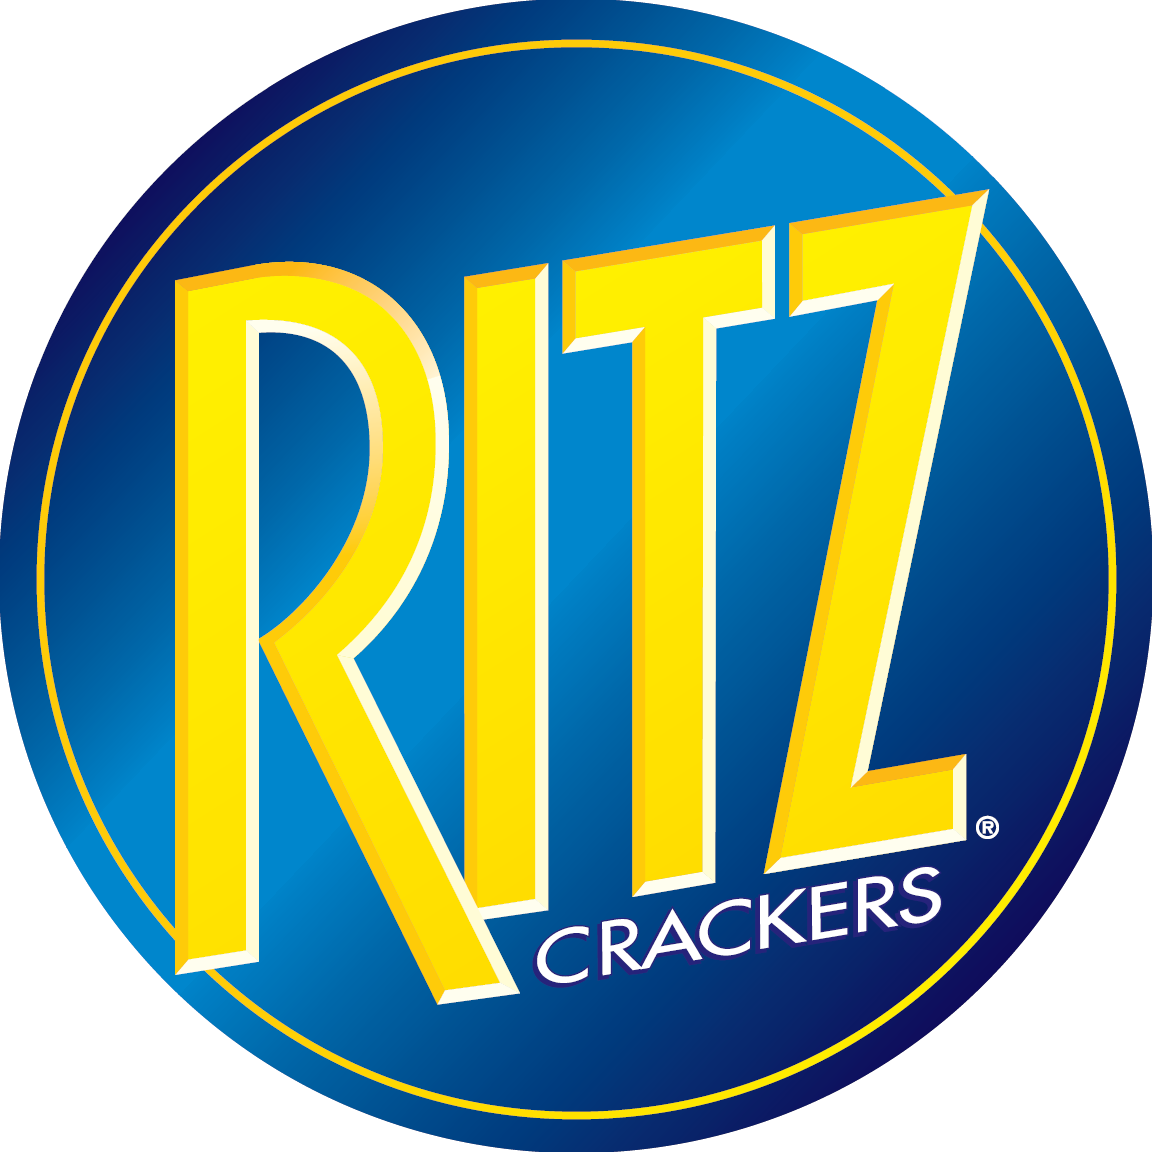 http://vignette1.wikia.nocookie.net/logopedia/images/7/70/Ritz_logo.png/revision/latest?cb=20100214172705